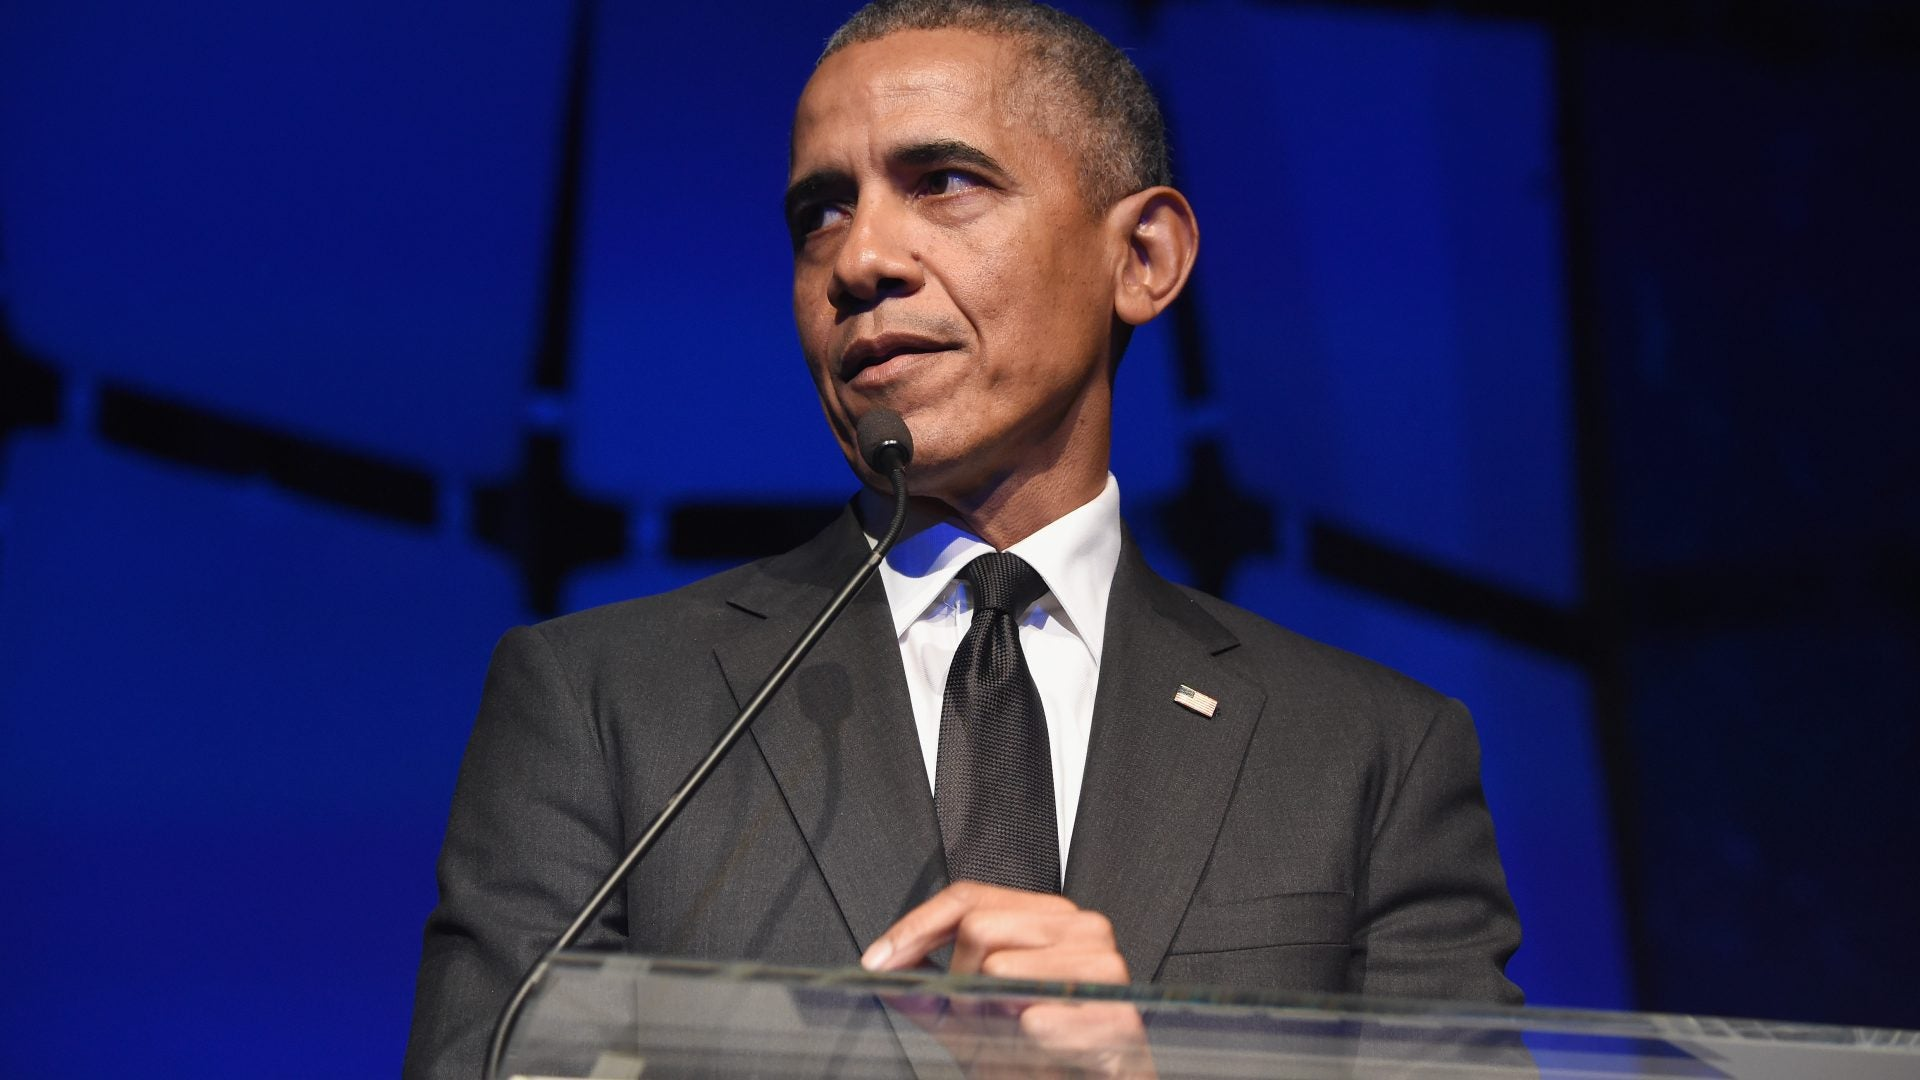 Obama Is The Best President Of Americans' Lifetimes: Poll